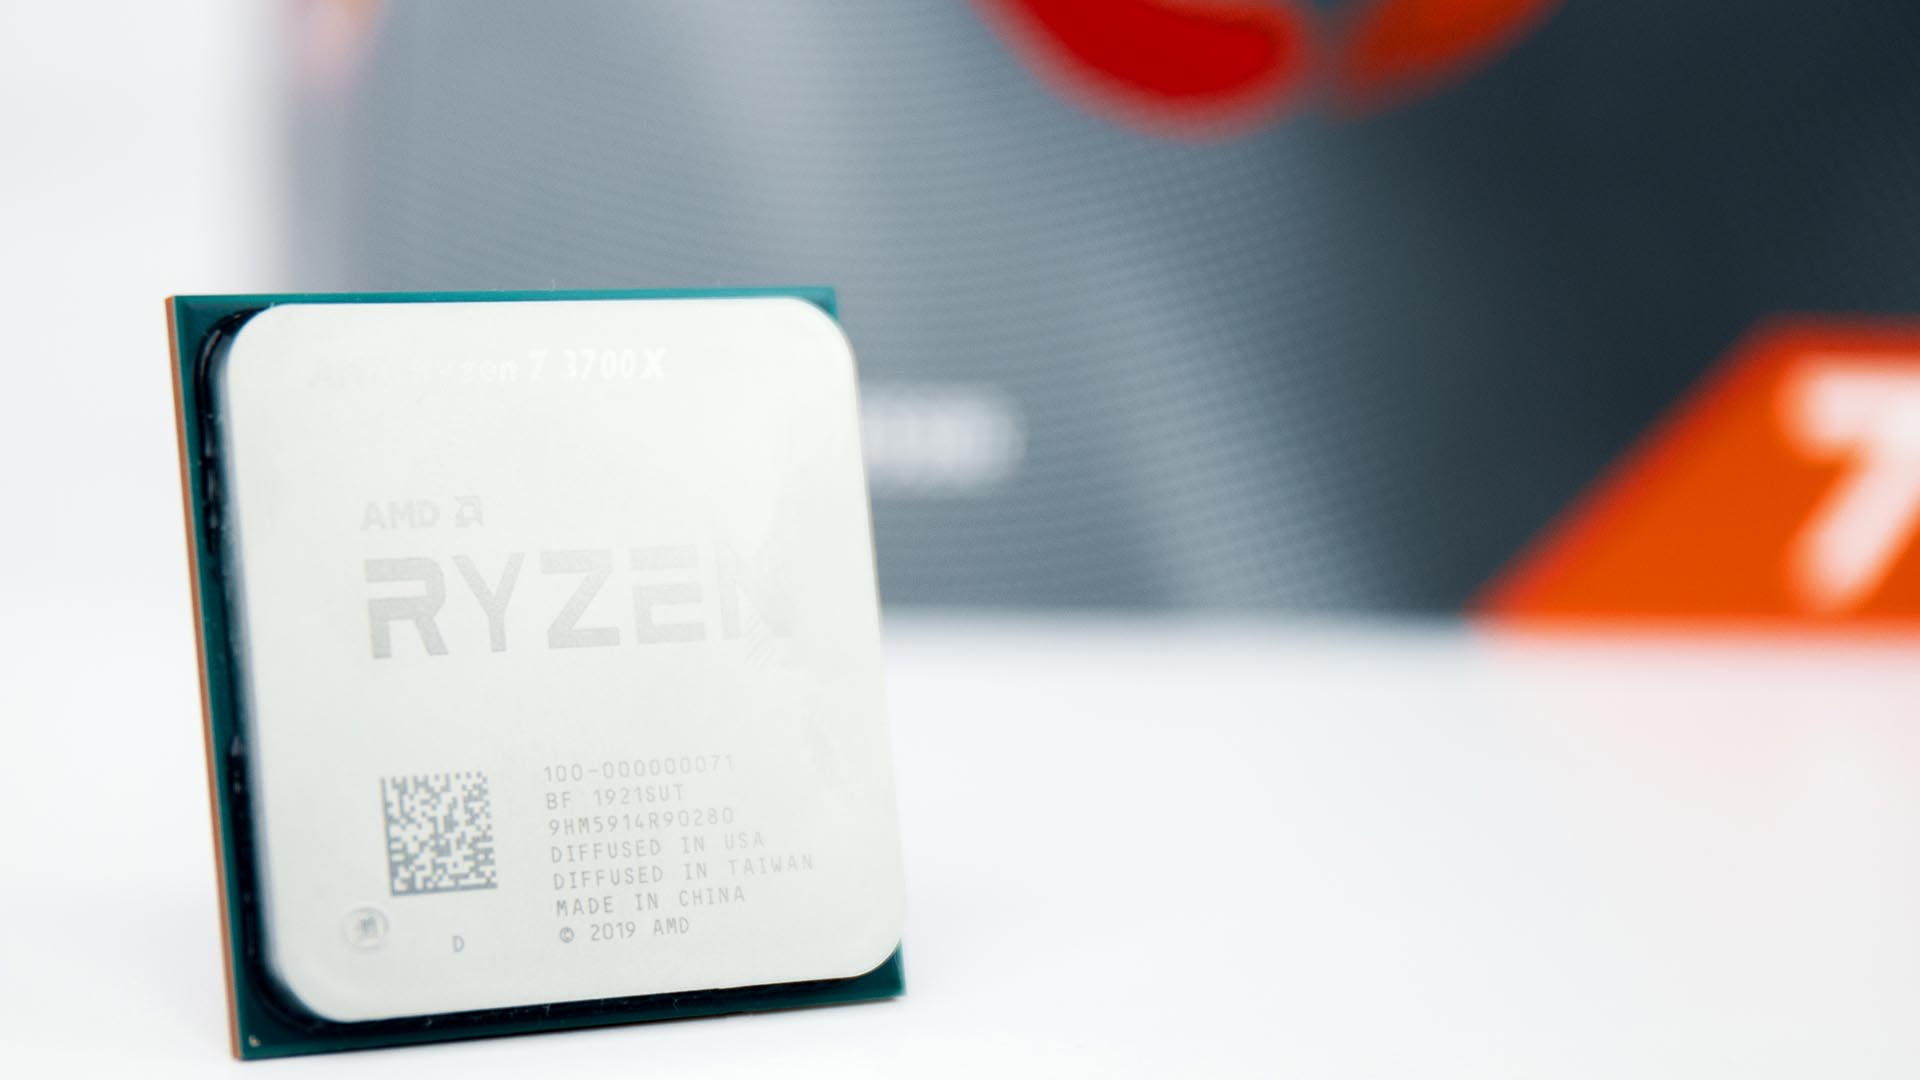 AMD Ryzen 7 3700X review: what a generational CPU update should look